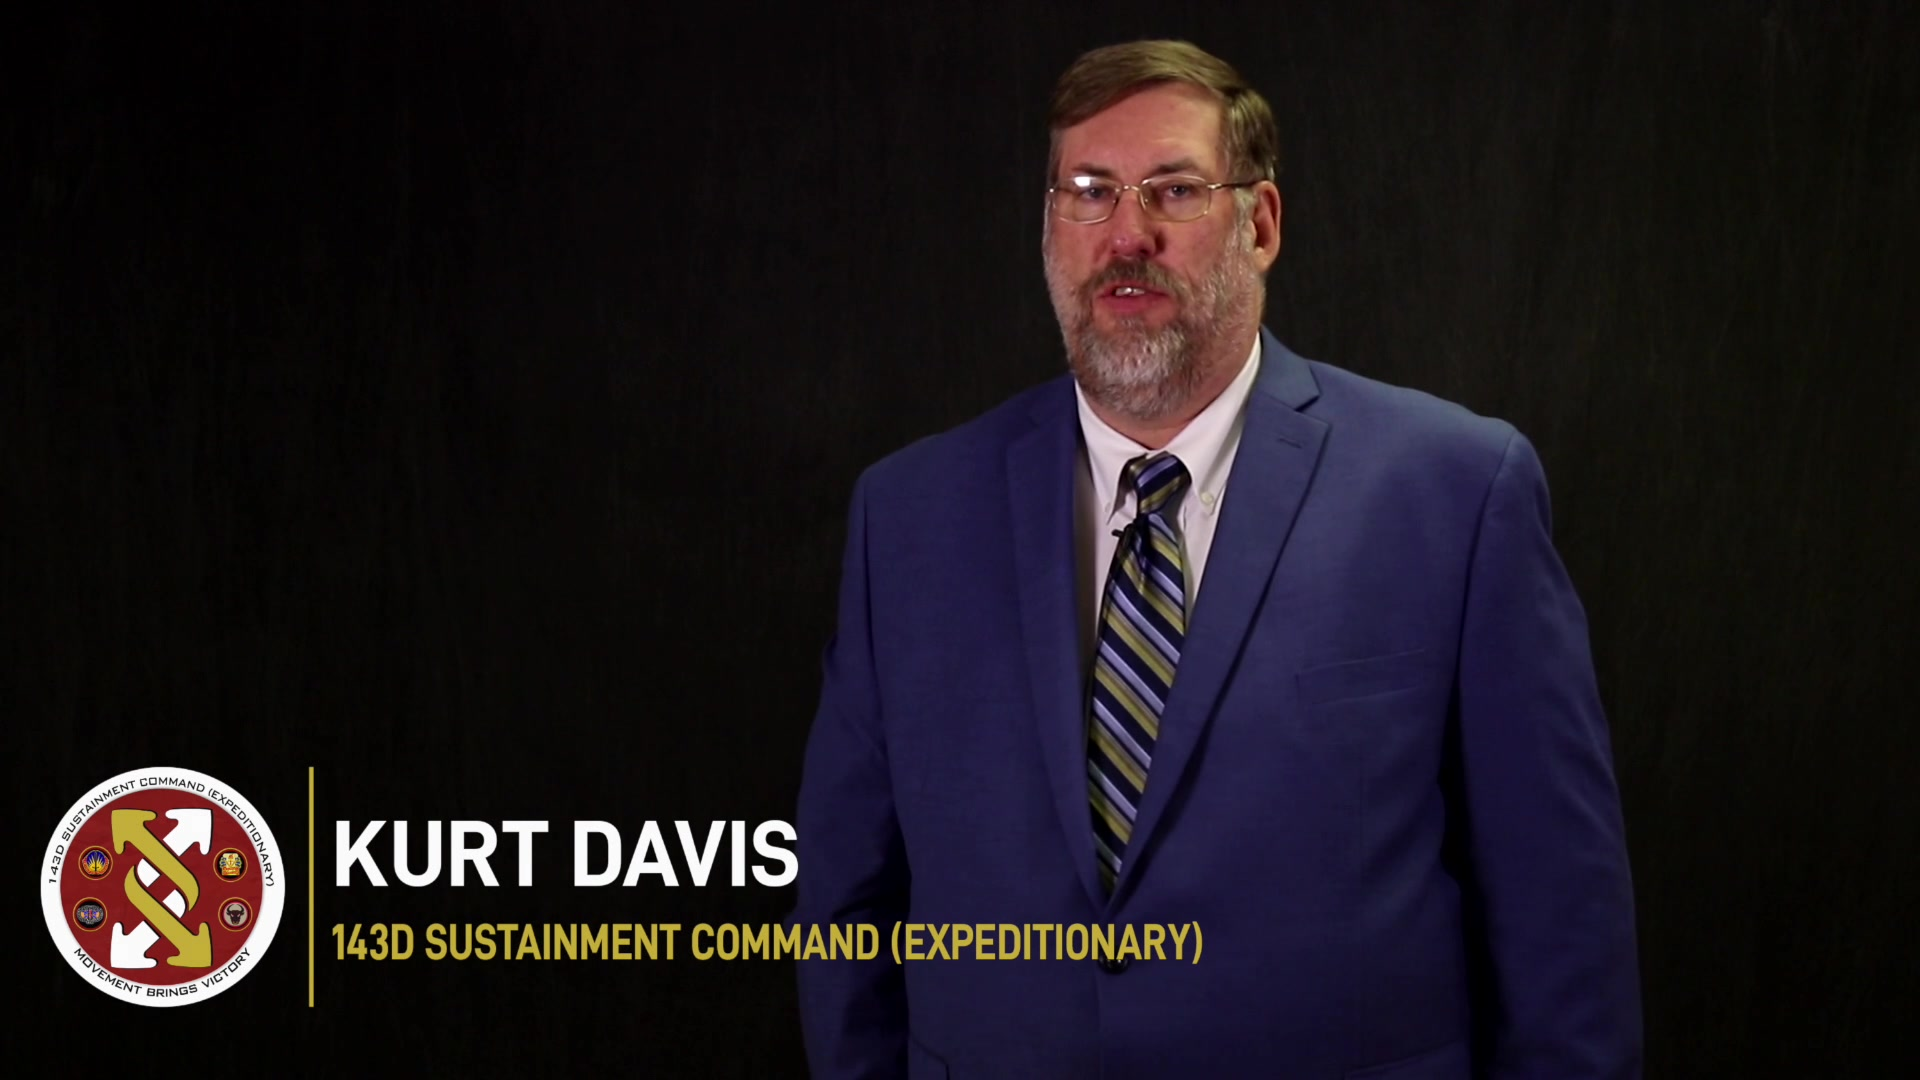 Mr. Kurt Davis of the 143d Sustainment Command (Expeditionary) in Orlando, Fla., shared how his work environment changed during the COVID-19 pandemic. (Army video by Spc. Leon Orange)